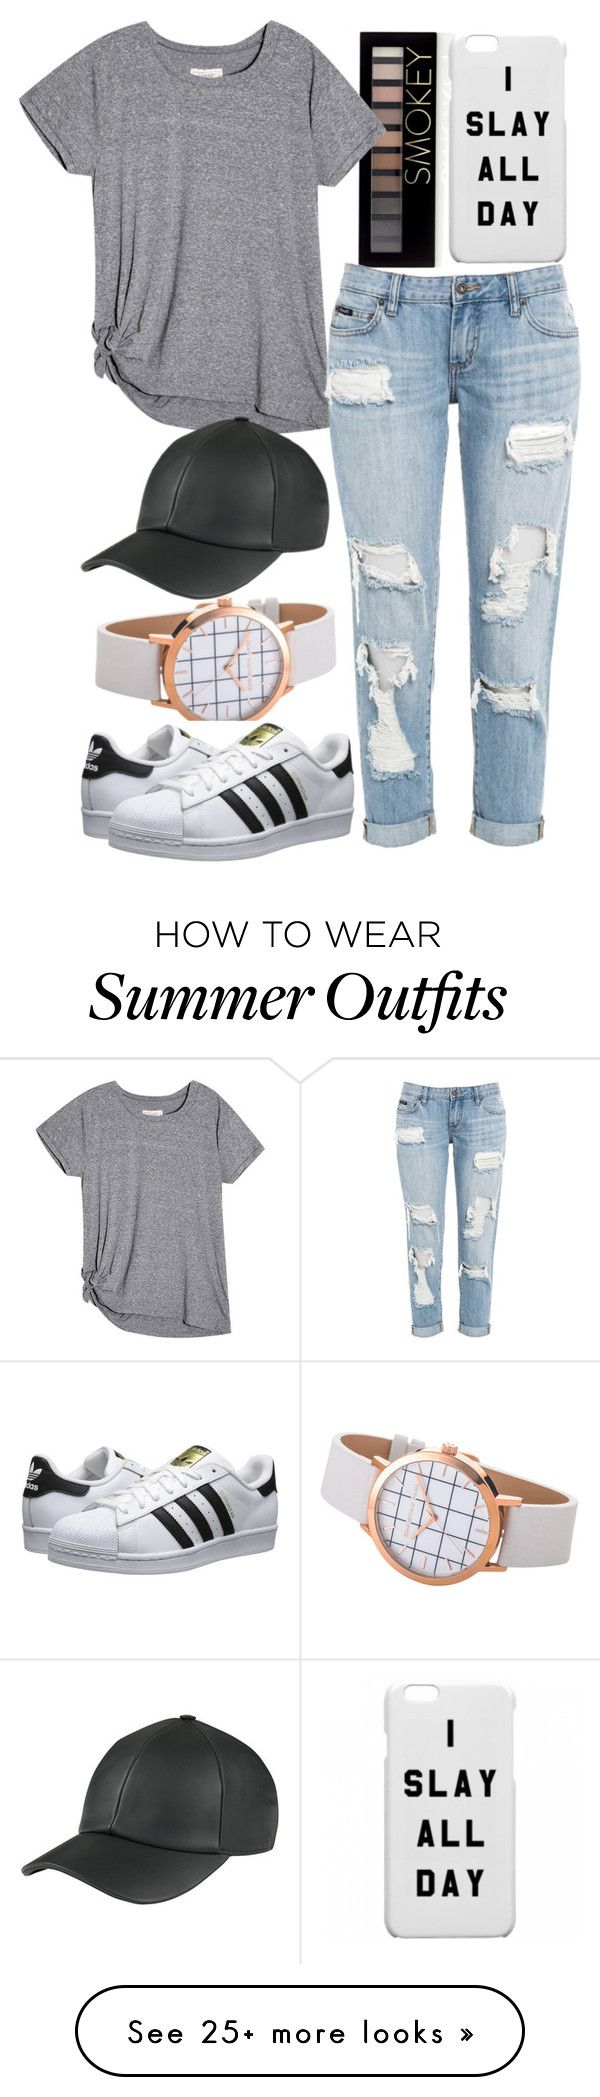 """""""Casual SPring/Summer outfit"""" by beautyandstylefox on Polyvore featuring Forever 21, adidas Originals, adidas, hat, watch, SmokeyEye and slay"""